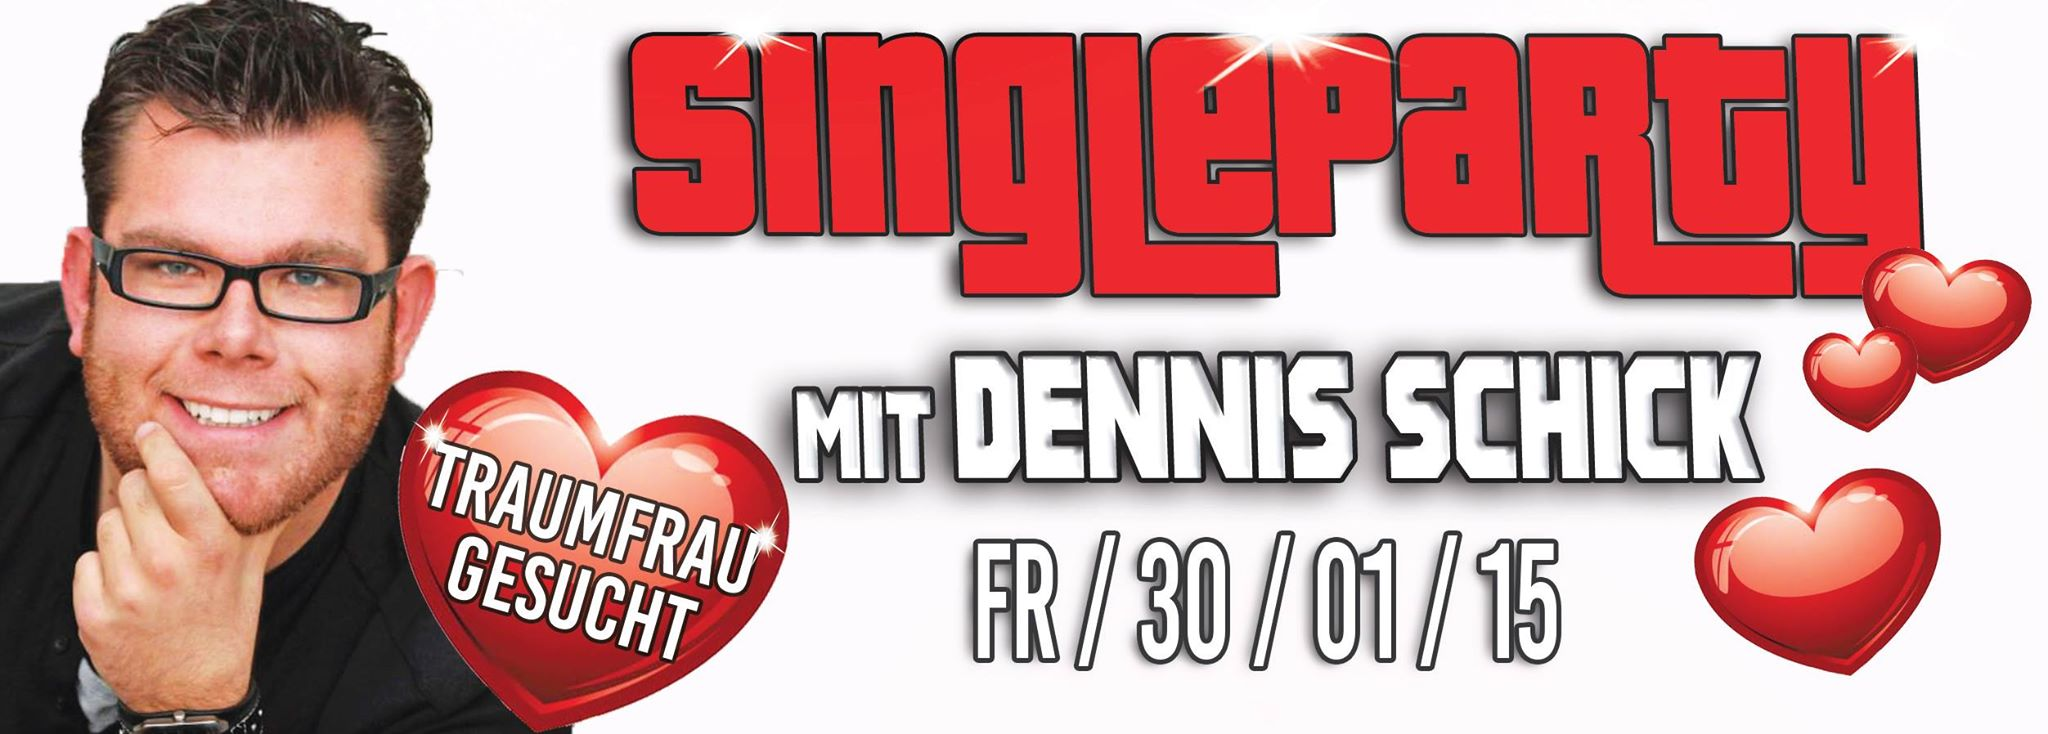 Single party merseburg